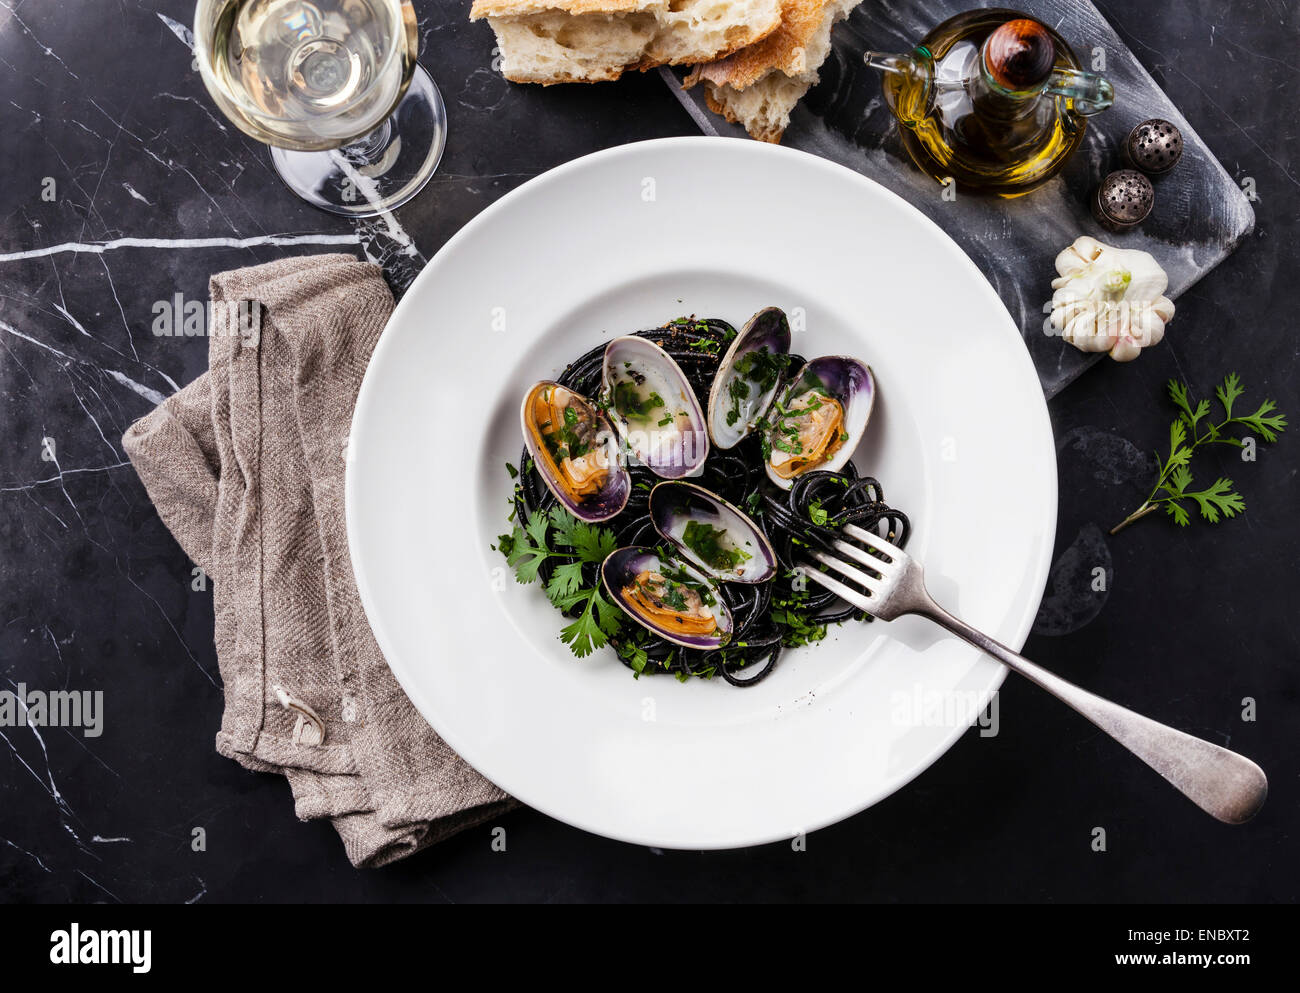 Seafood pasta with clams Spaghetti Vongole on white plate on dark marble background - Stock Image